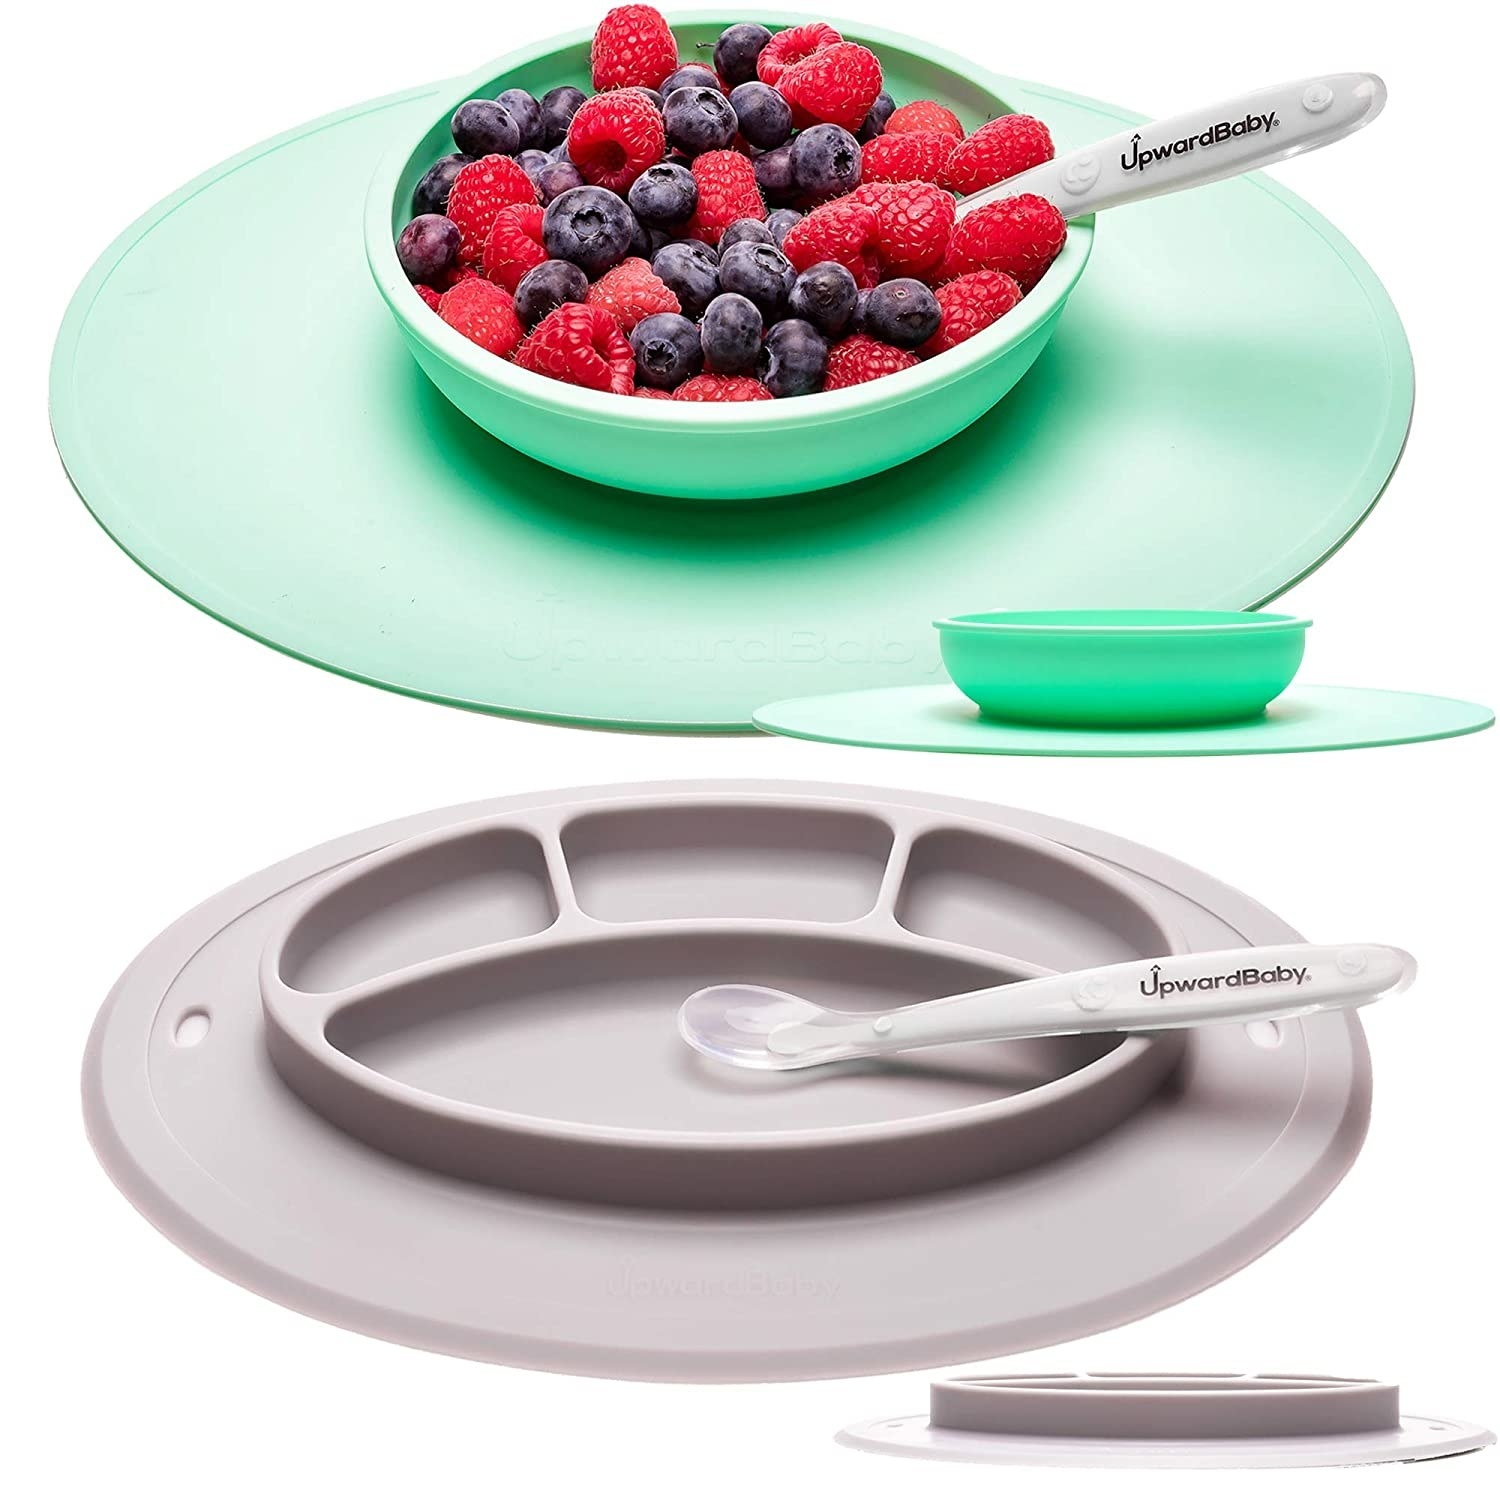 A picture of the plates with a mixtures of berries on one of the plates